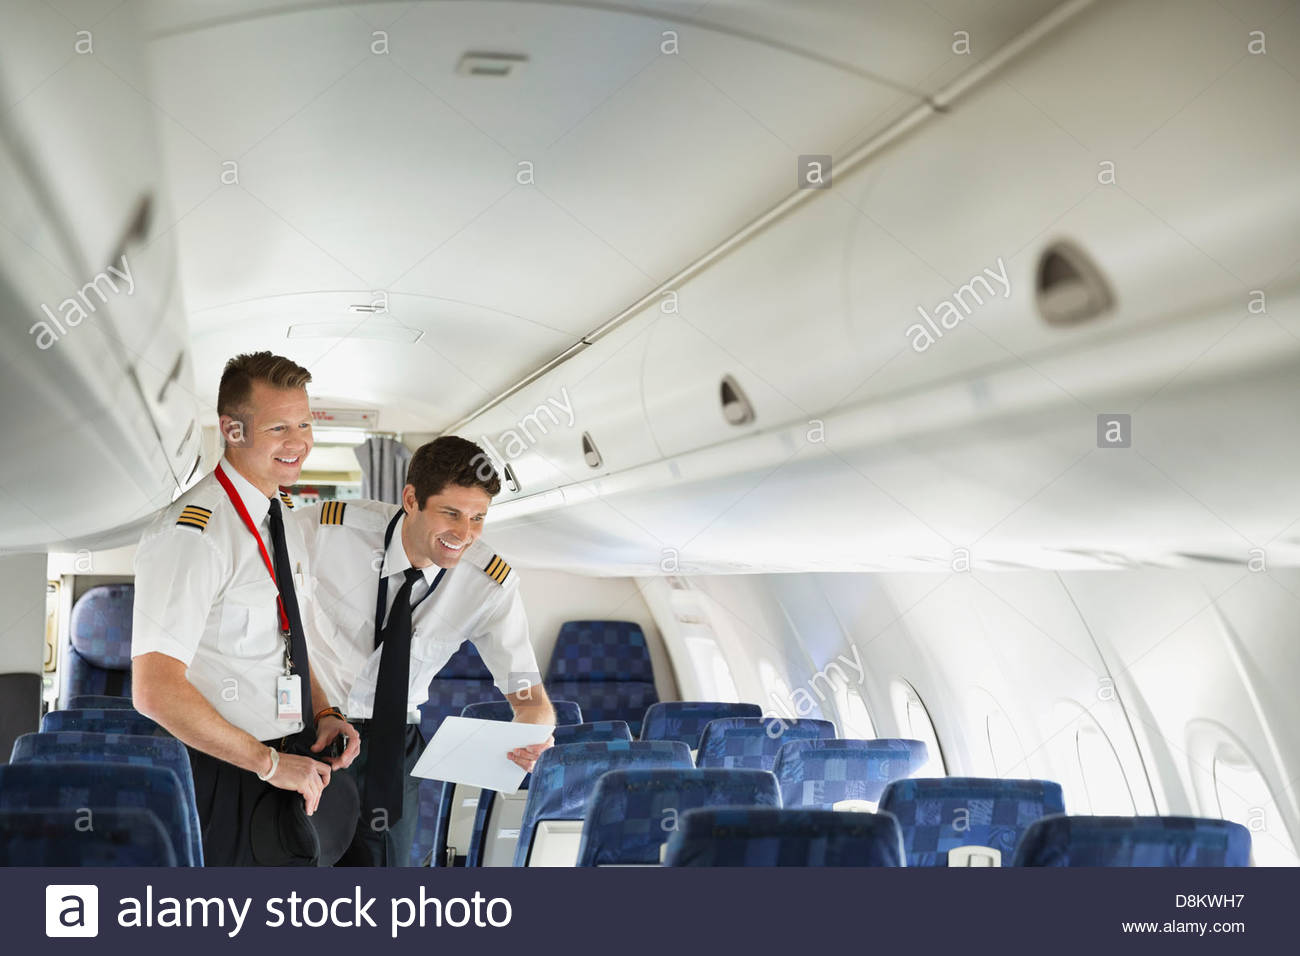 Male pilot and co-pilot looking out window in airplane cabin - Stock Image